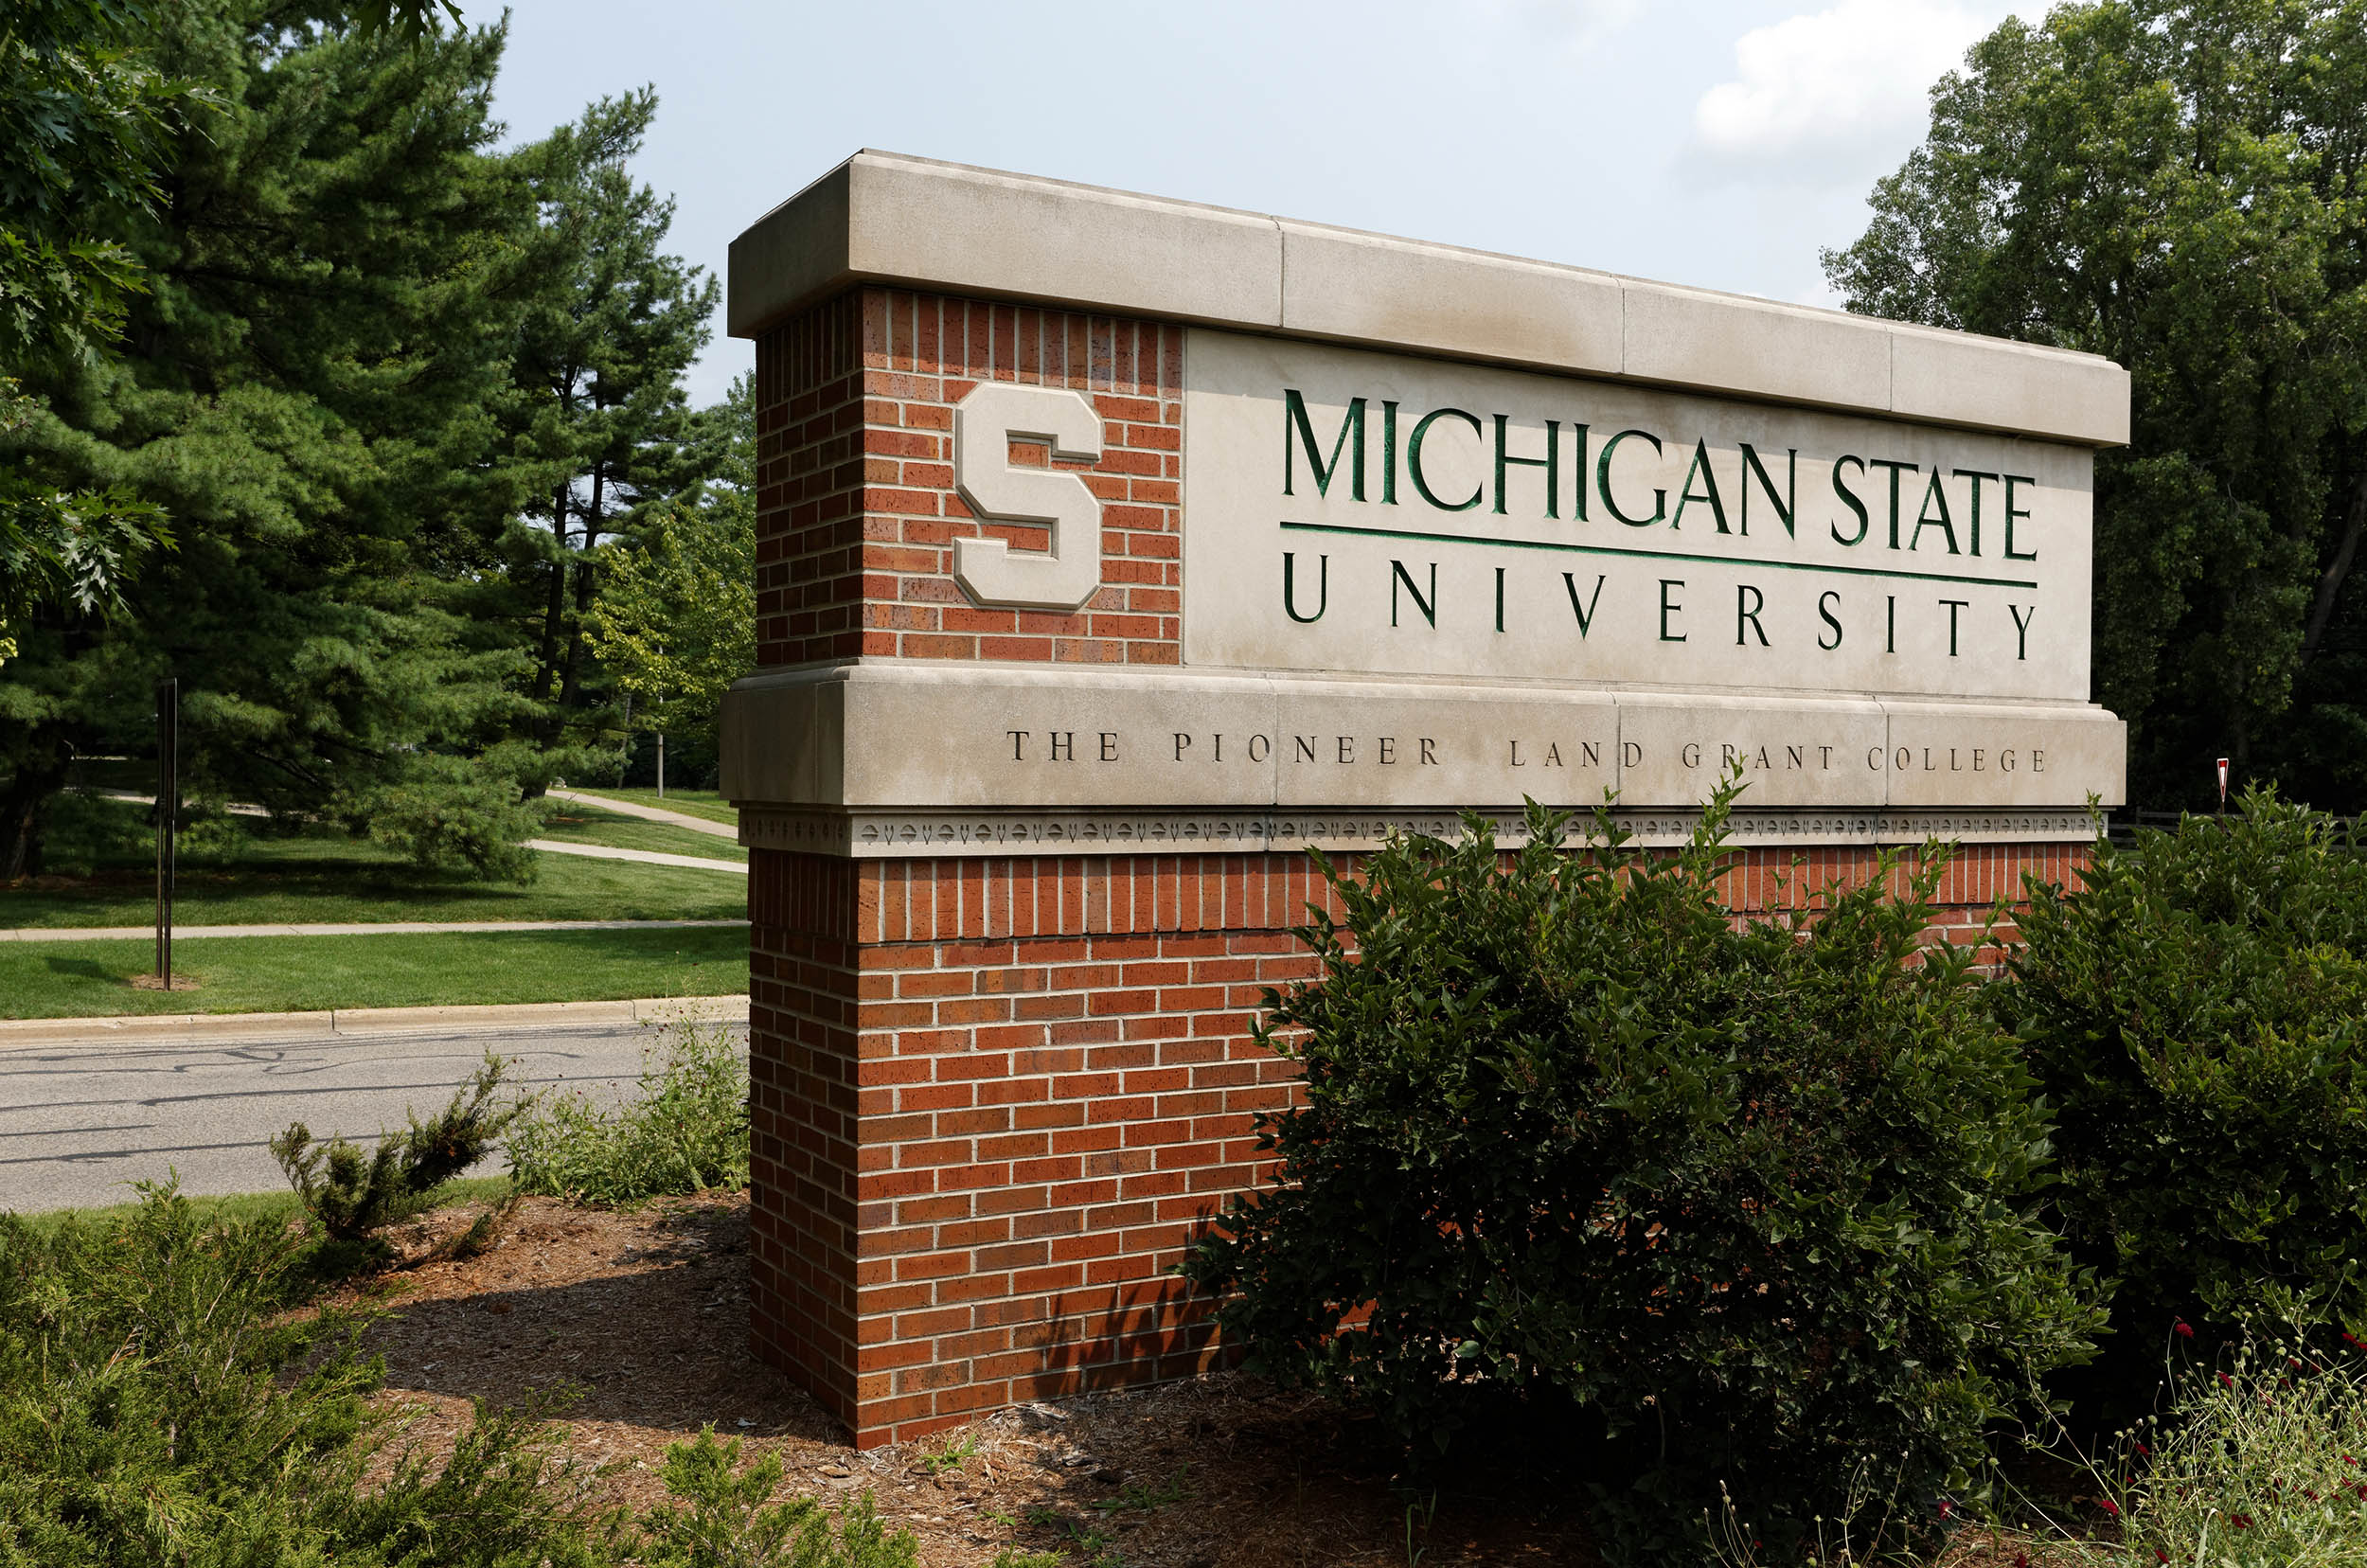 An entrance to Michigan State University located in East Lansing, Michigan on August 1, 2014. MSU is a public research university founded in 1855.